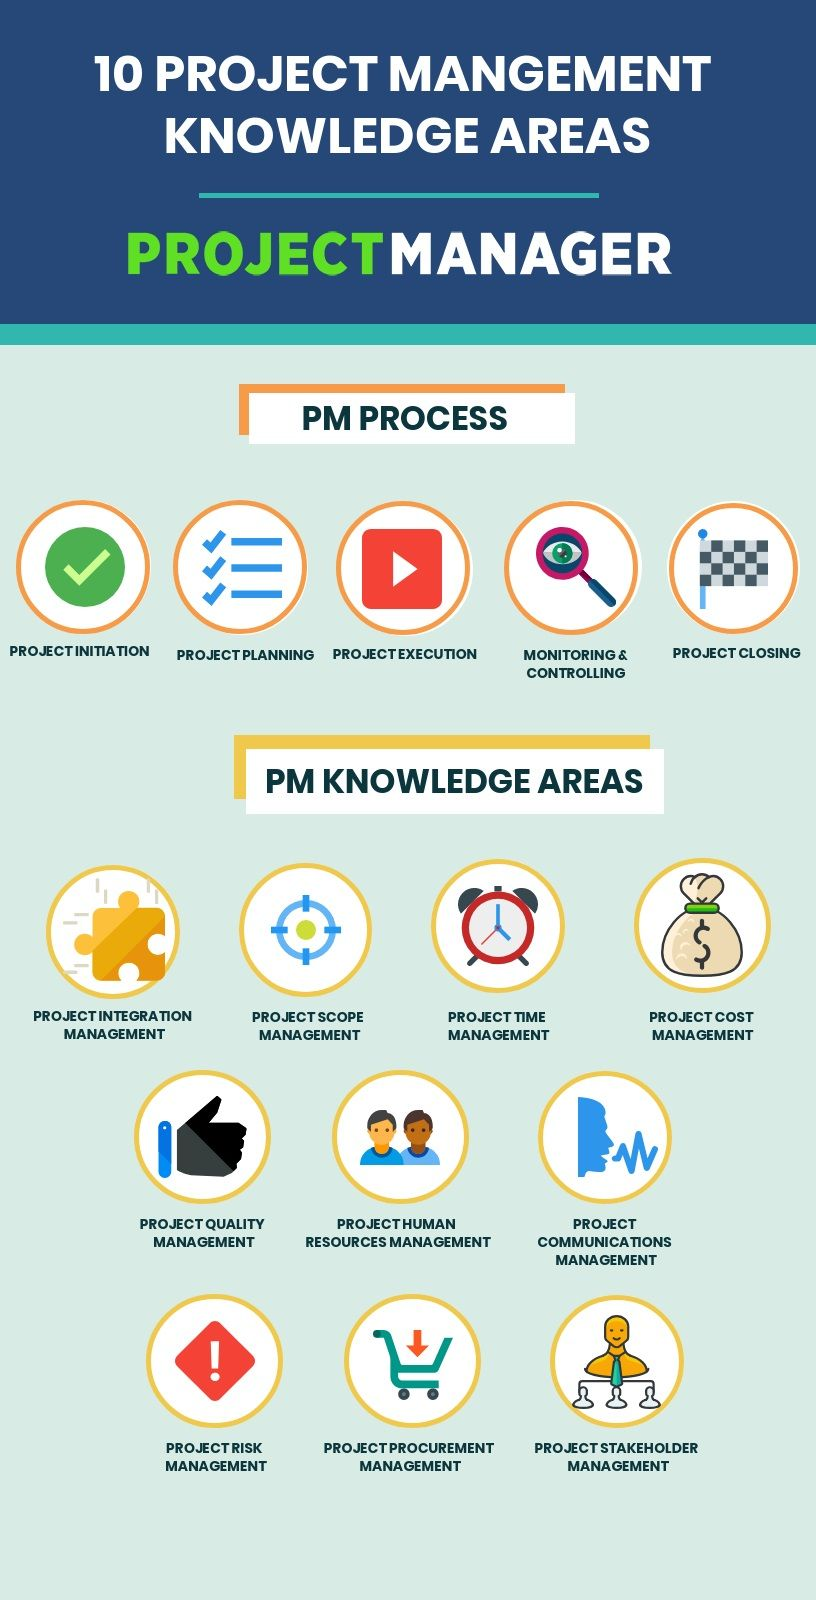 What Are The Pm Process And Knowledge Area Groups By Projectmanager